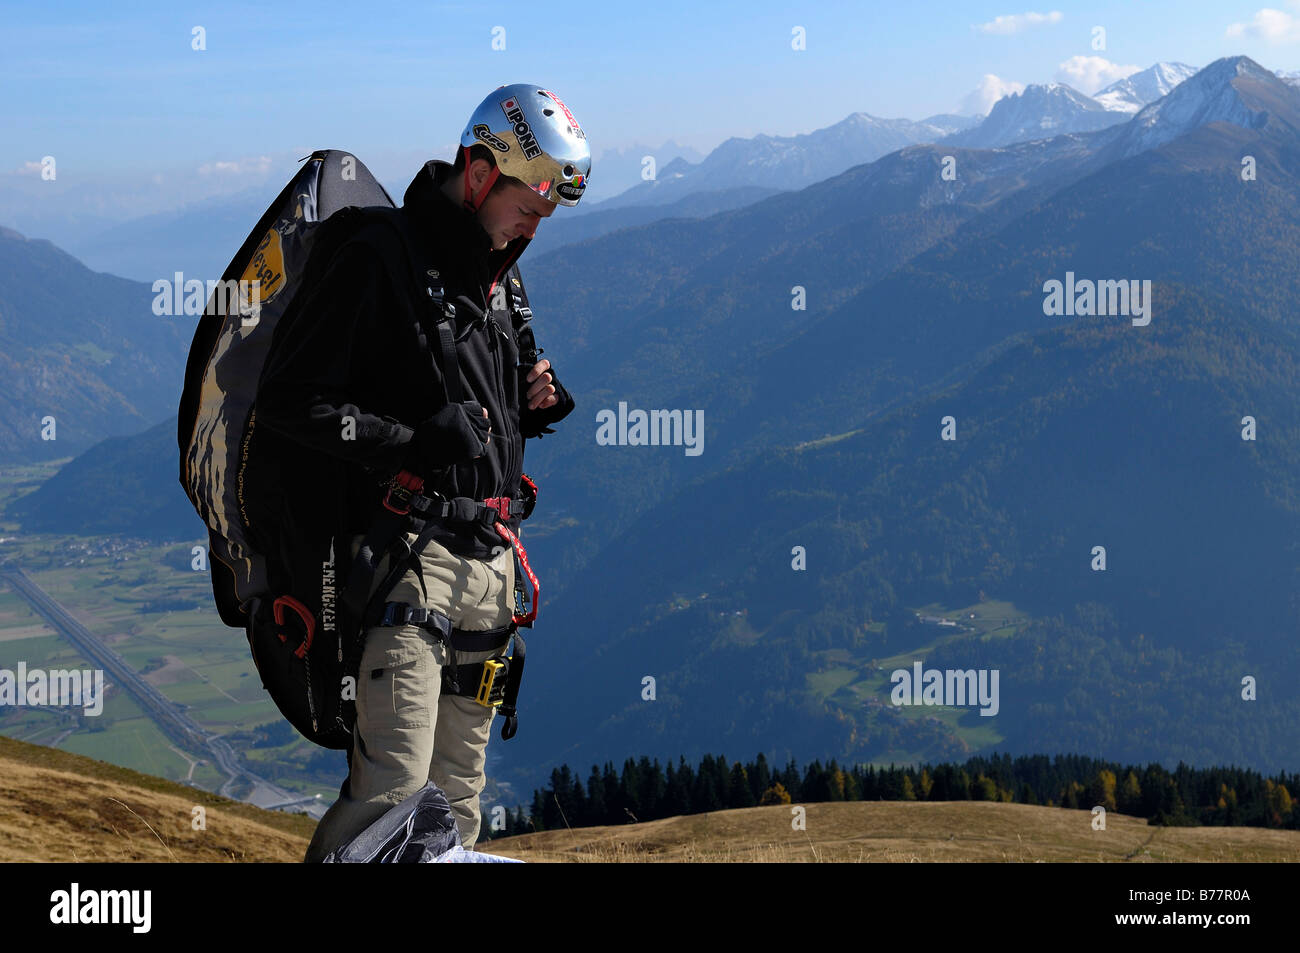 Paraglider mentally preparing for takeoff, Monte Cavallo, Sterzing, Province of Bolzano-Bozen, Italy, Europe - Stock Image